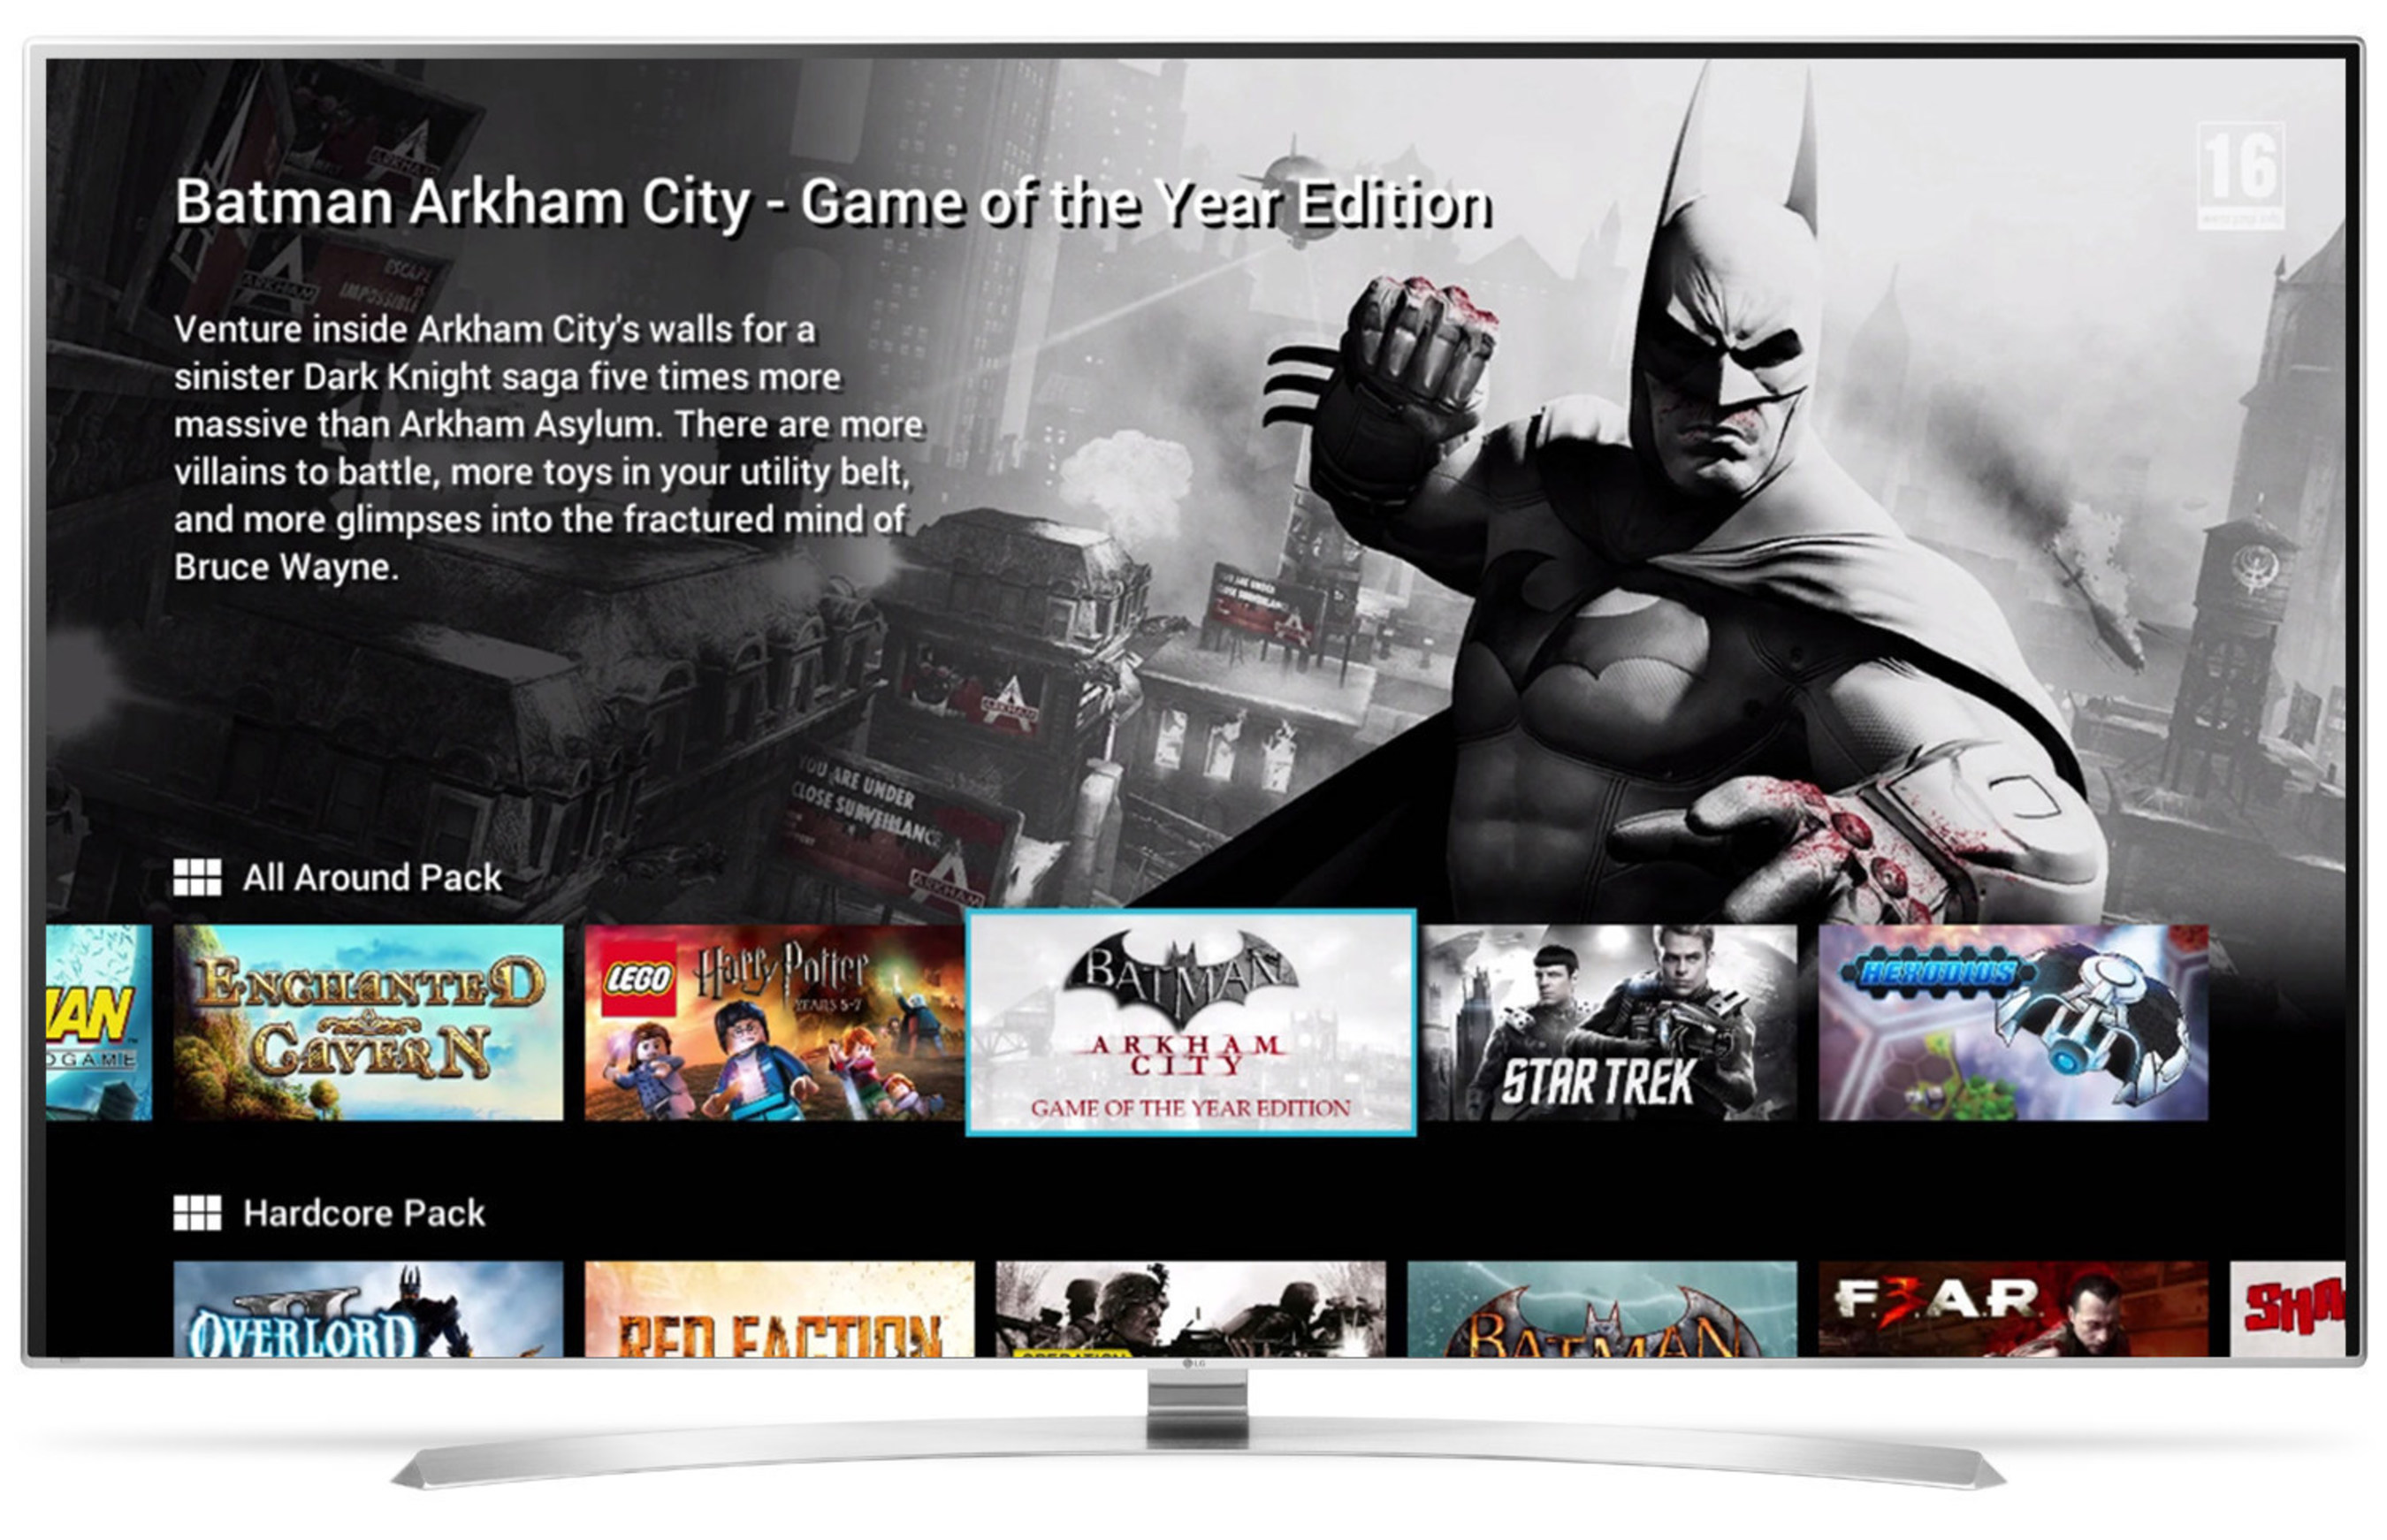 LG Electronics USA today announced the addition of GameFly - the leading console game subscription service - to LG's webOS-enabled Smart TVs. The GameFly Streaming App will launch in late April and will enable U.S. consumers to access GameFly's premium console gaming content on LG OLED and LCD/LED TVs featuring LG's simple and fast webOS Smart TV platform.